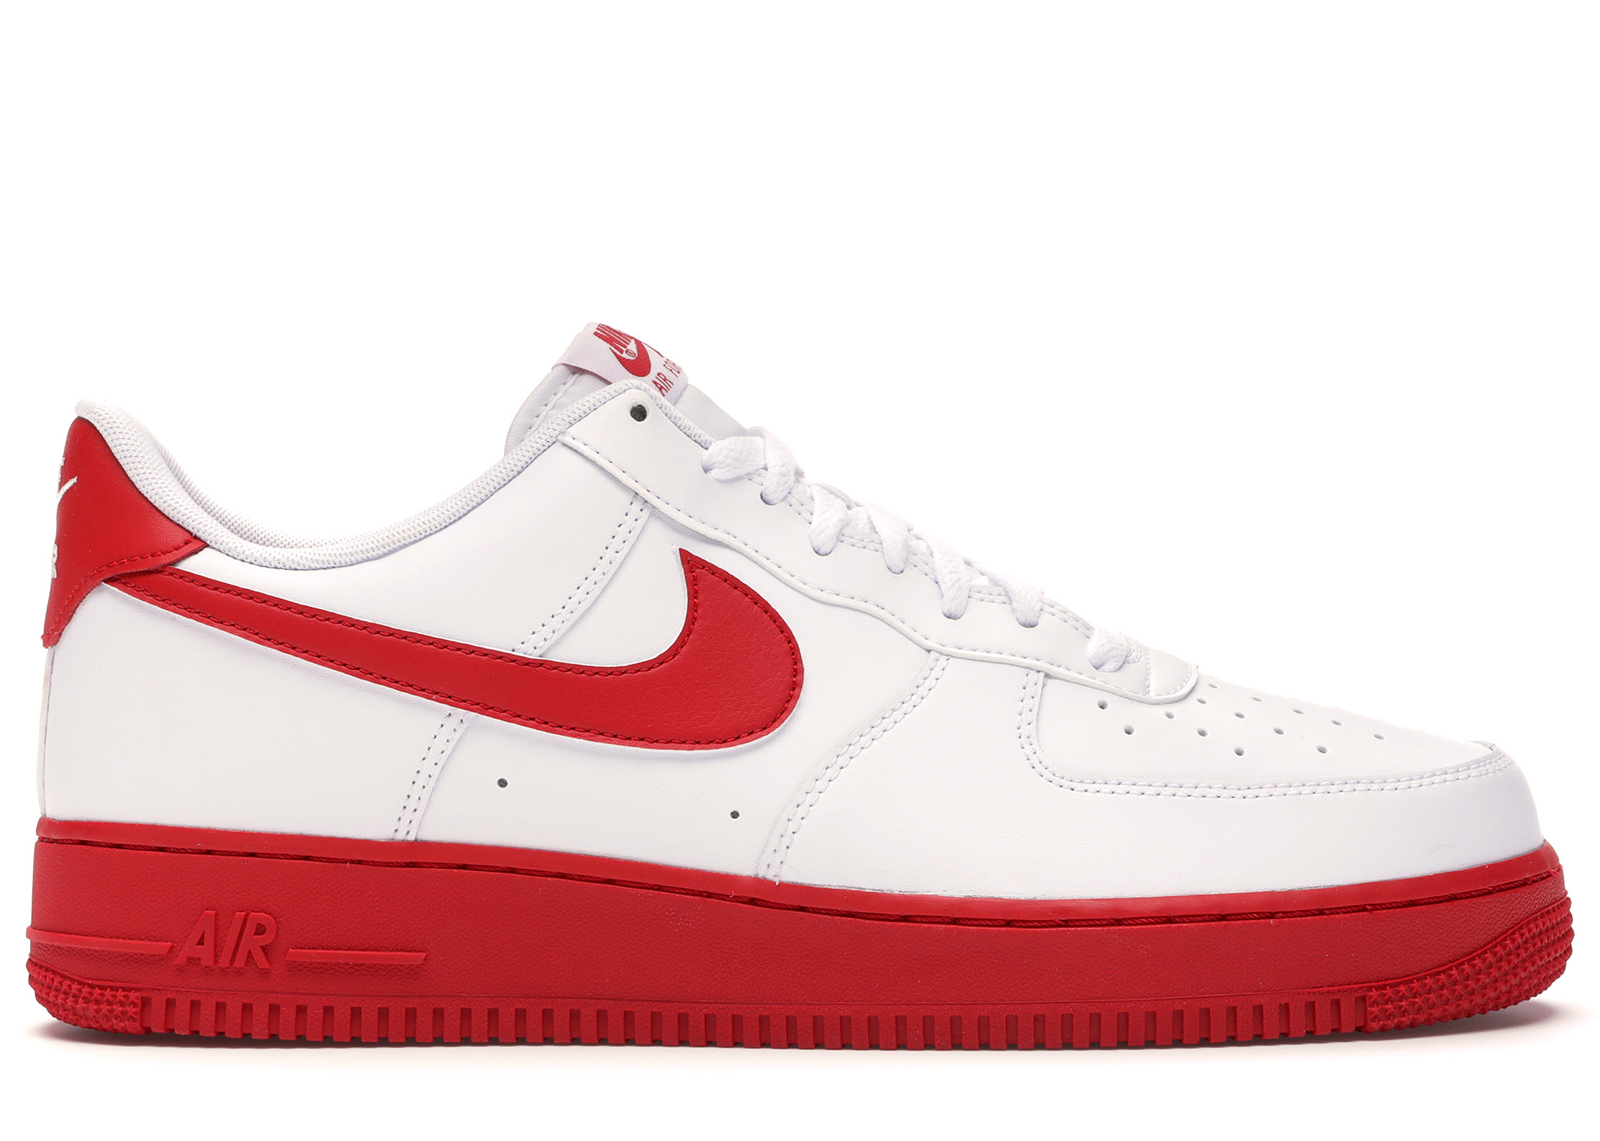 Nike Air Force 1 Low White Red Midsole